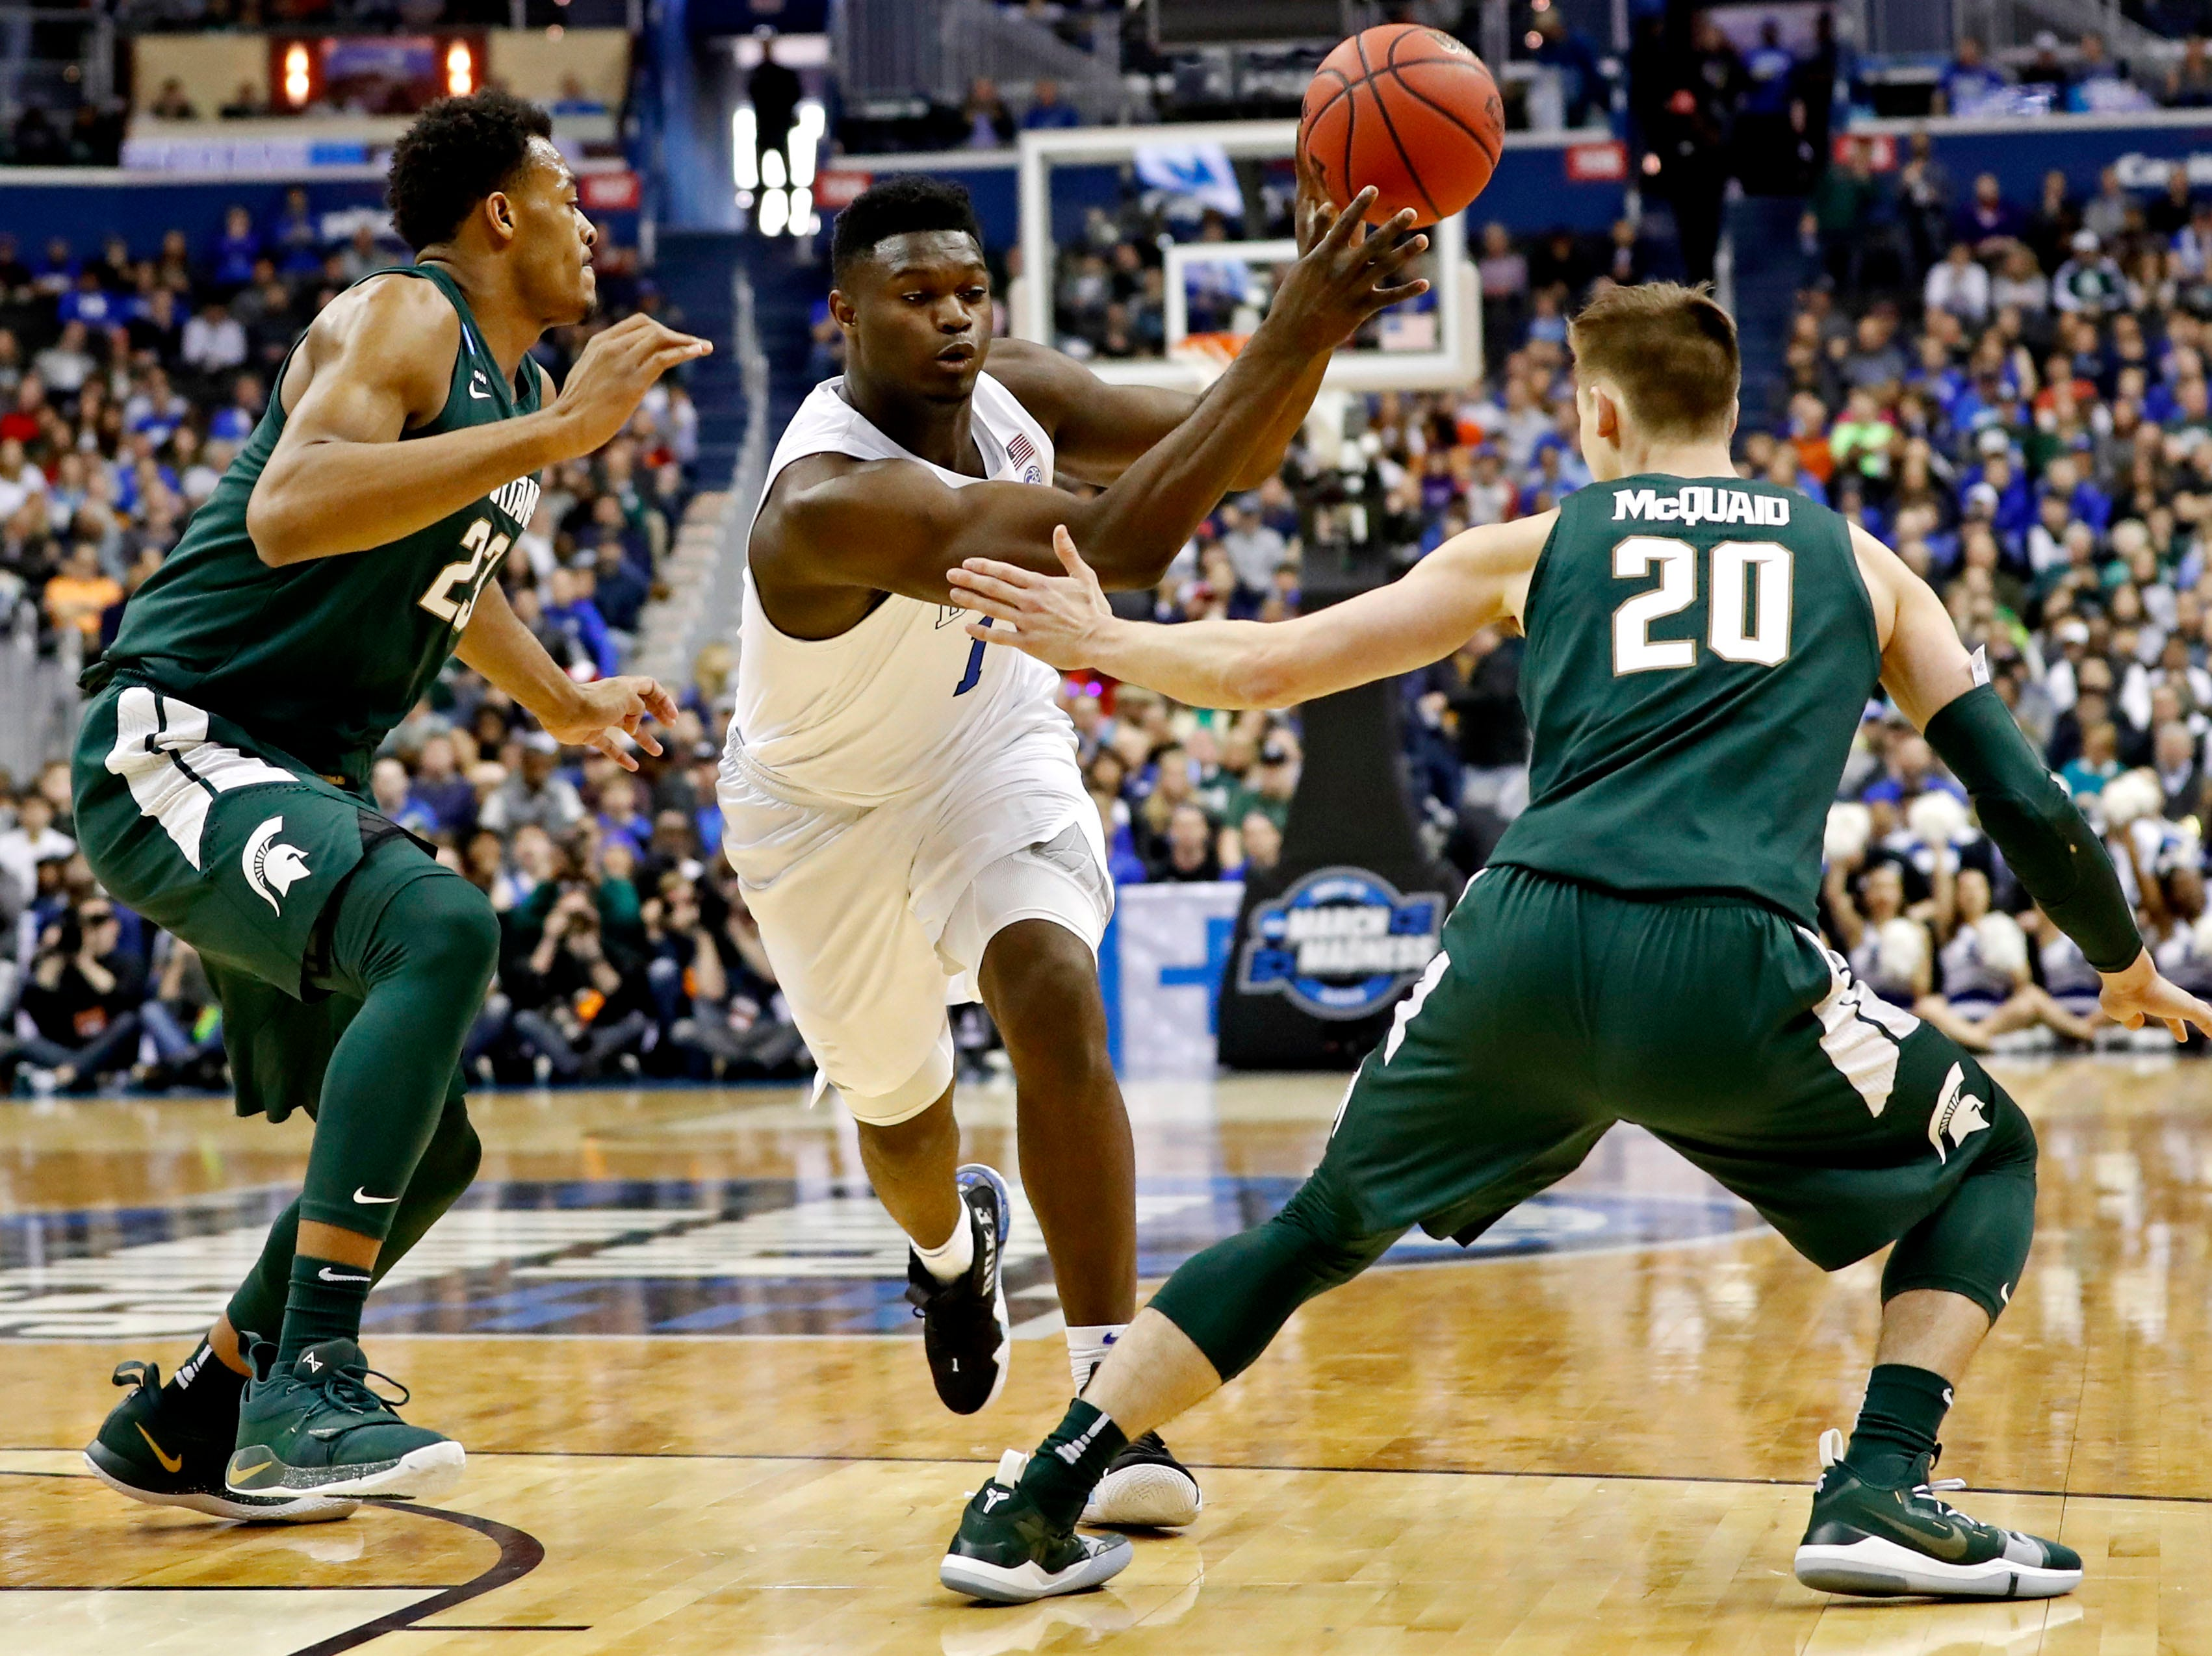 Duke Blue Devils forward Zion Williamson (1) passes the ball against Michigan State Spartans guard Matt McQuaid (20) during the first half in the championship game of the east regional of the 2019 NCAA Tournament at Capital One Arena.